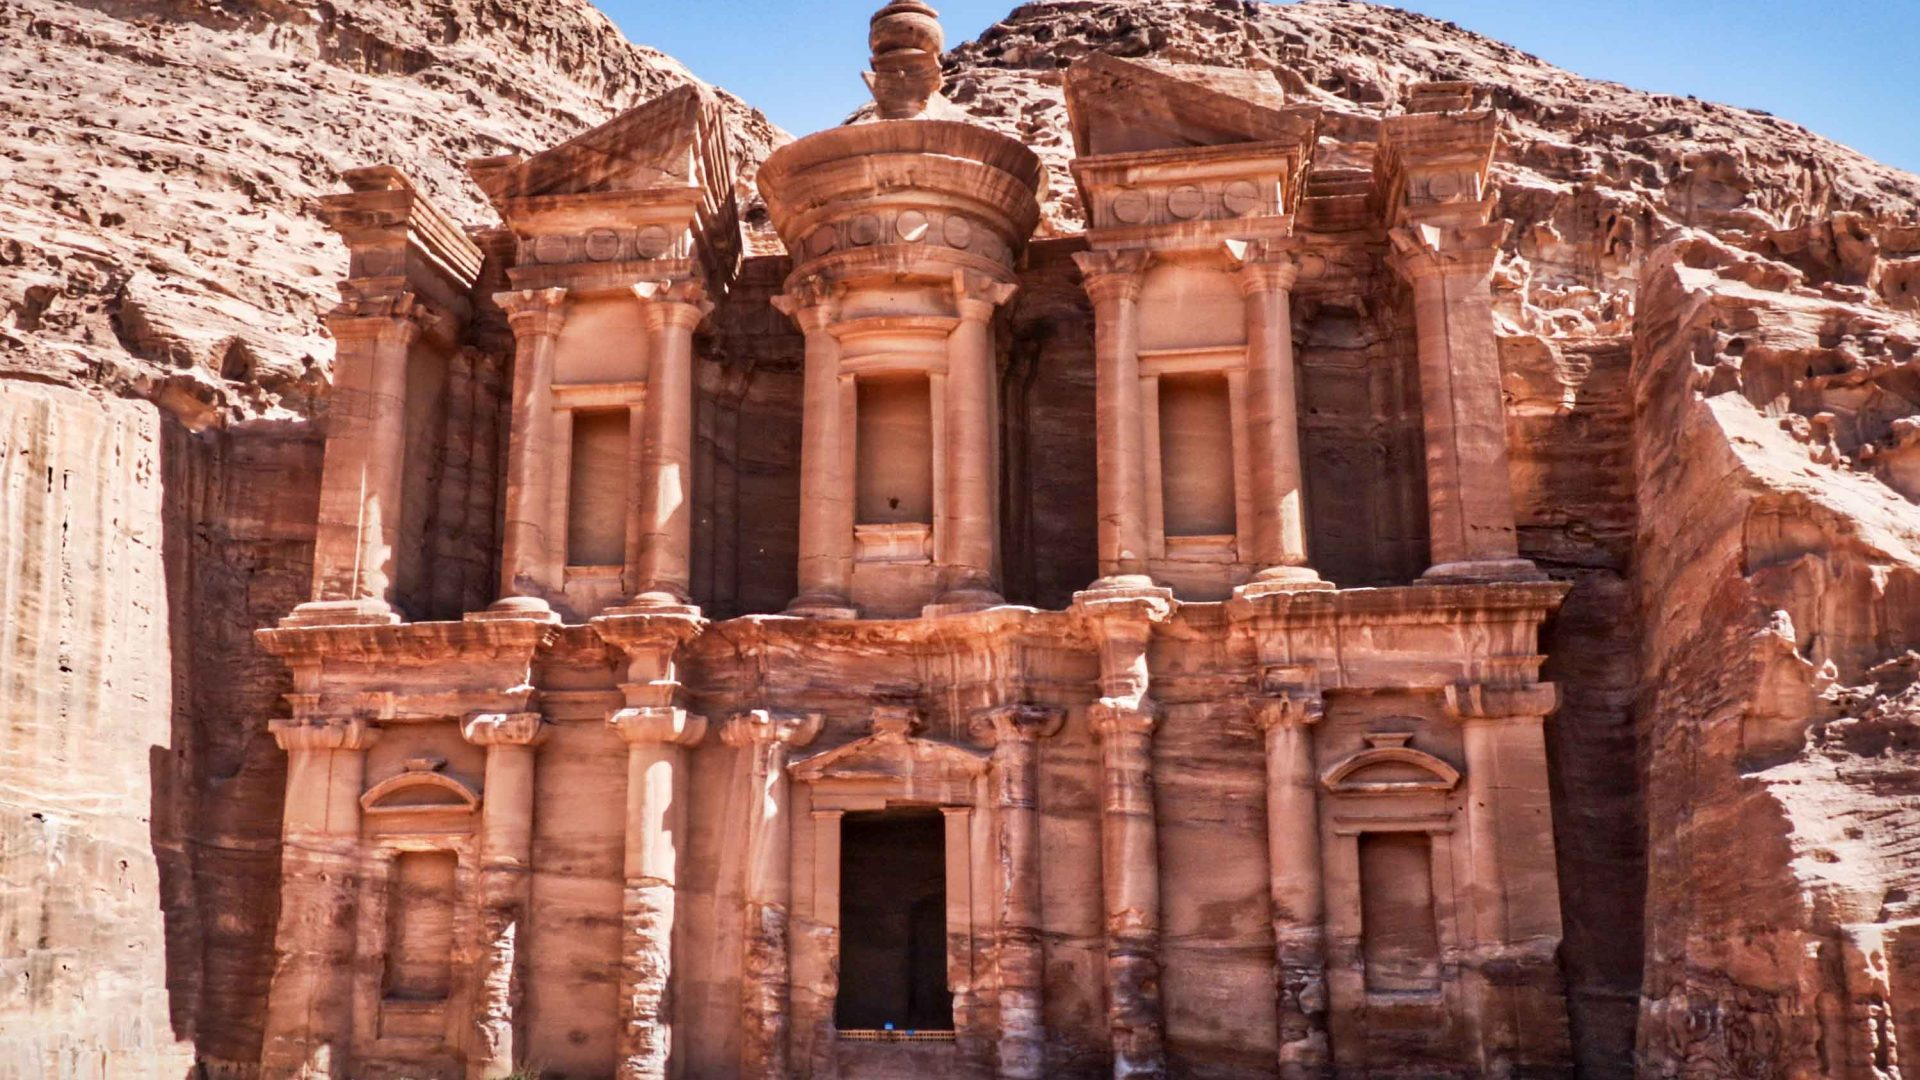 The monastery at Petra, Jordan.